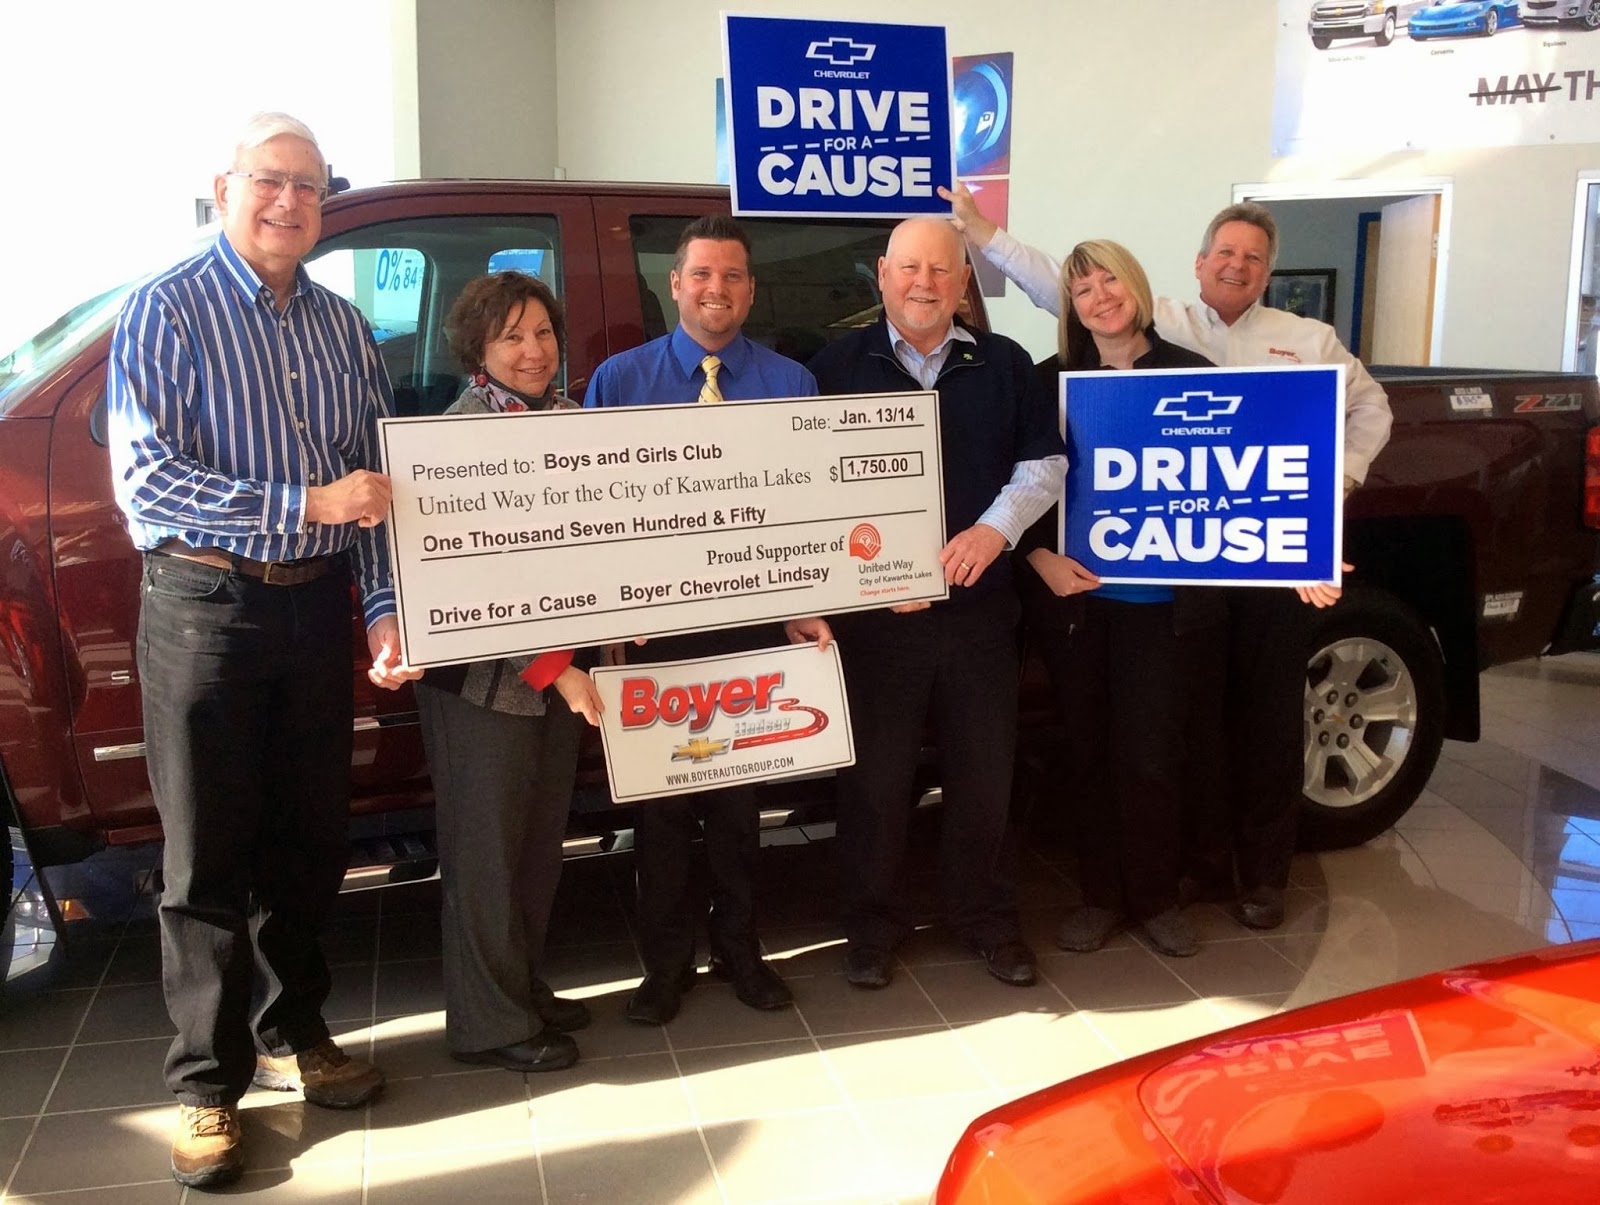 image Kawartha Lakes United Way and Boys and Girls Club receive Drive for the Cause Check